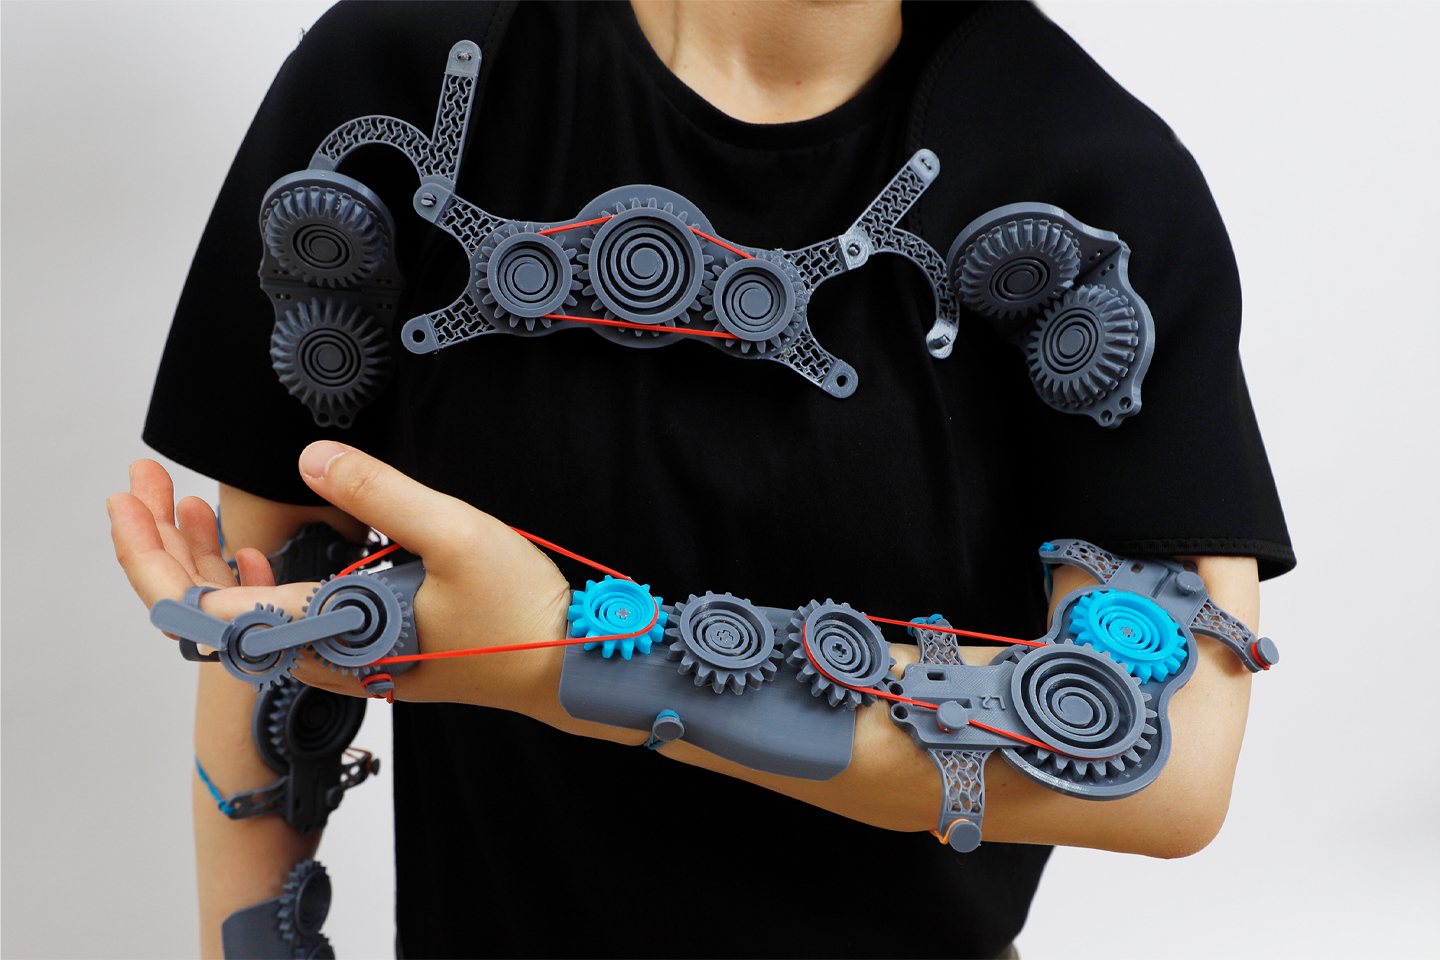 This wearable assistive device designed to help stroke patients relearn muscle movements is modular and adaptable!